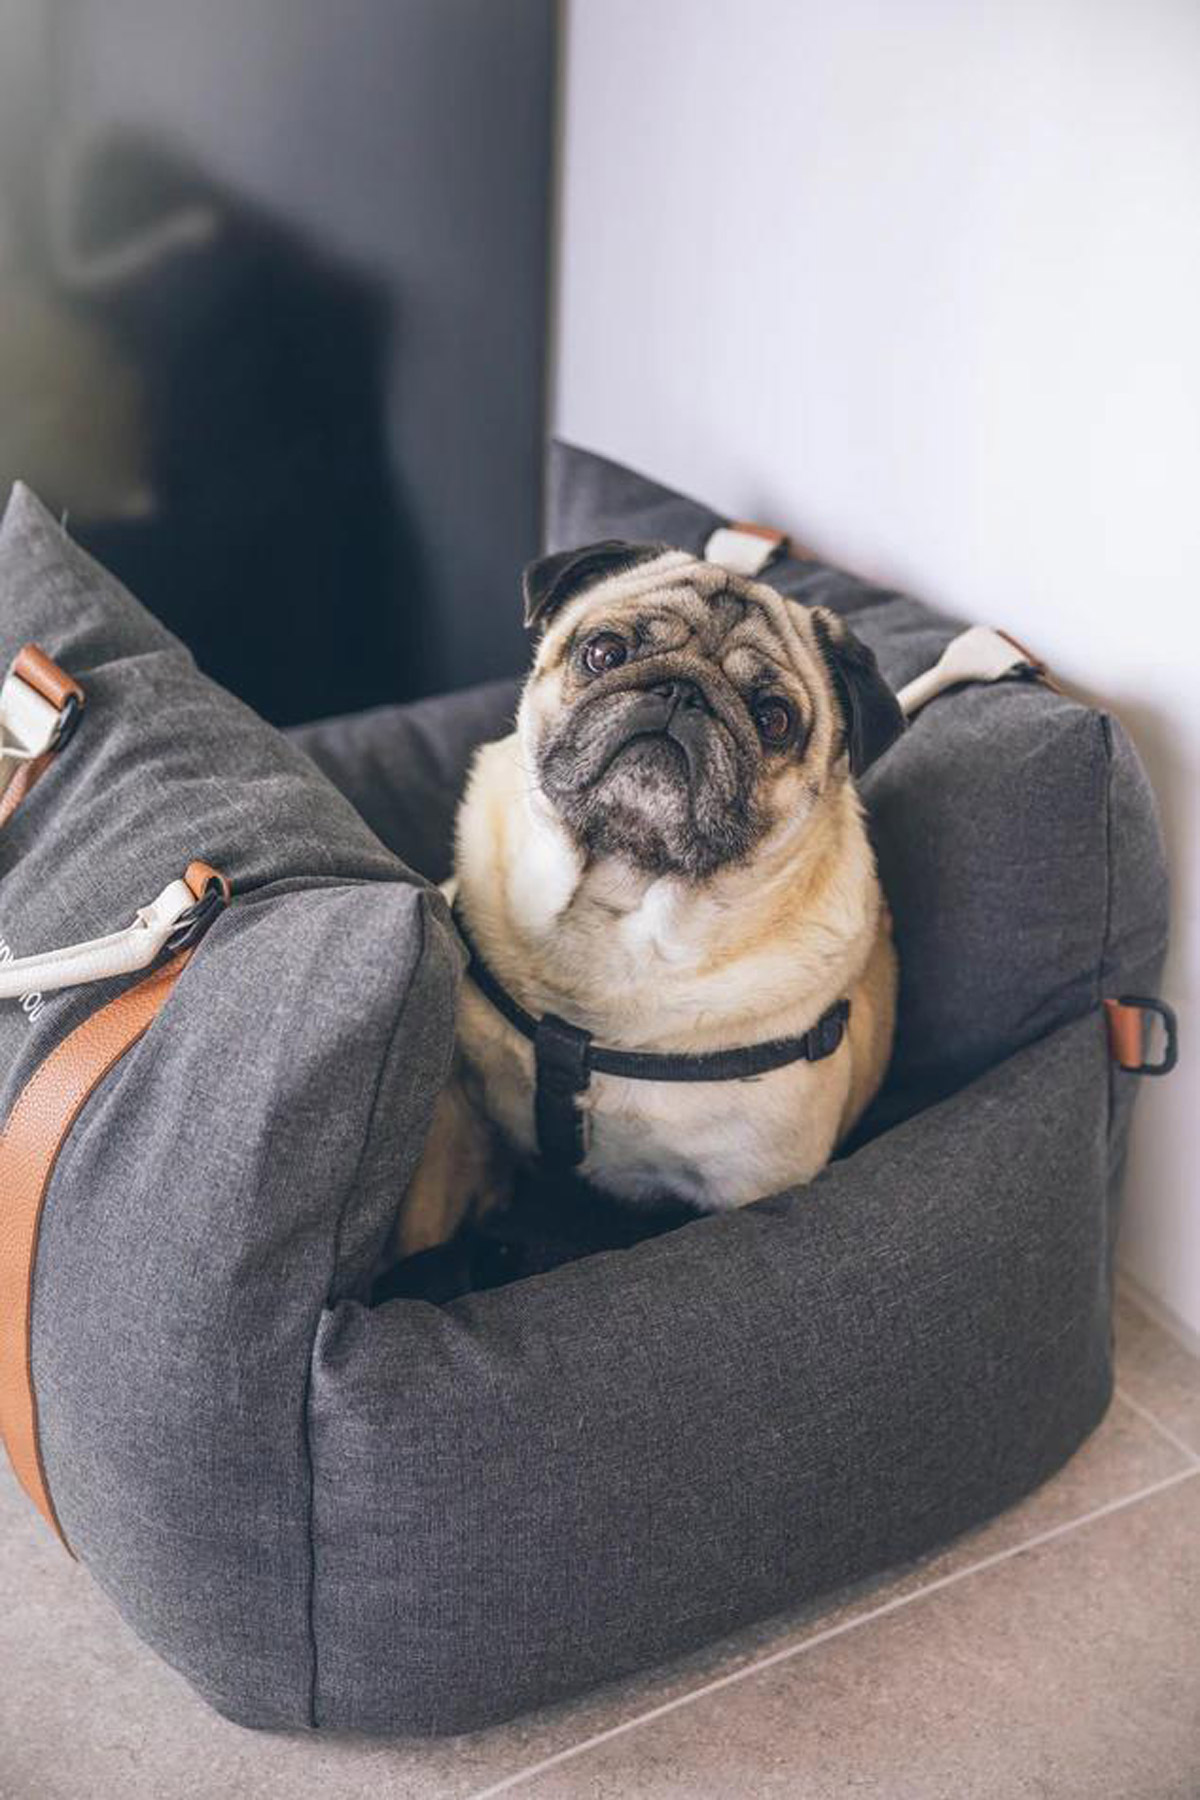 What to pack on a road trip with my dog, what to pack for a car ride with a dog, car necessities for a dog, pet necessities for a car ride